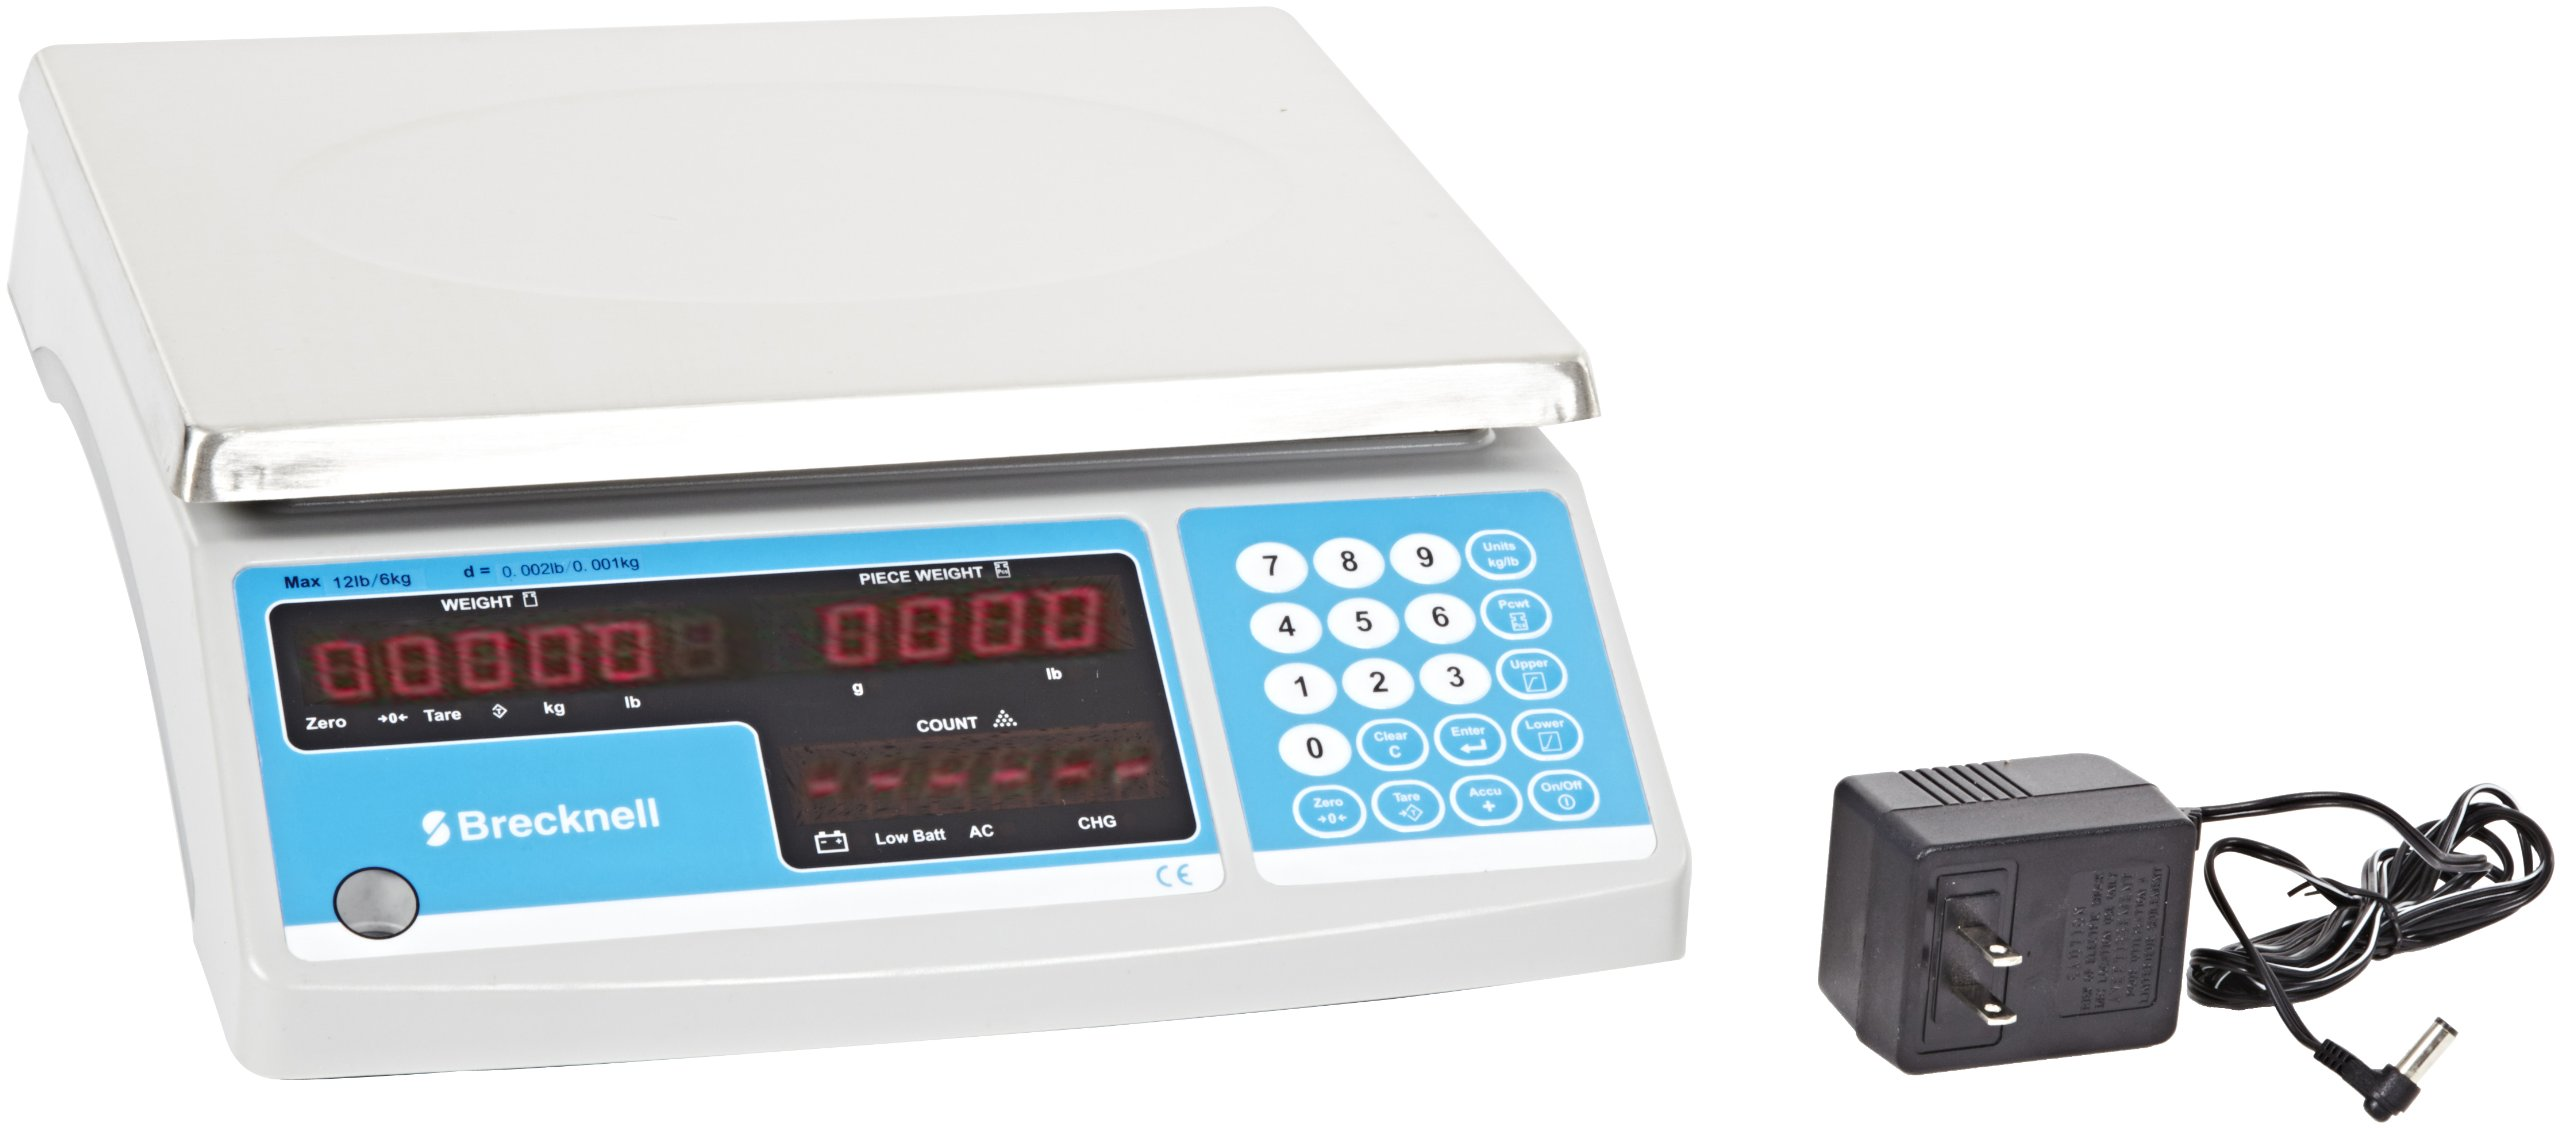 Salter-Brecknell B120 Electronic Counting Scale with LED Display, 8-3/4'' Length x 11-1/2'' Width x 1/2'' Height, 30lbs Capacity